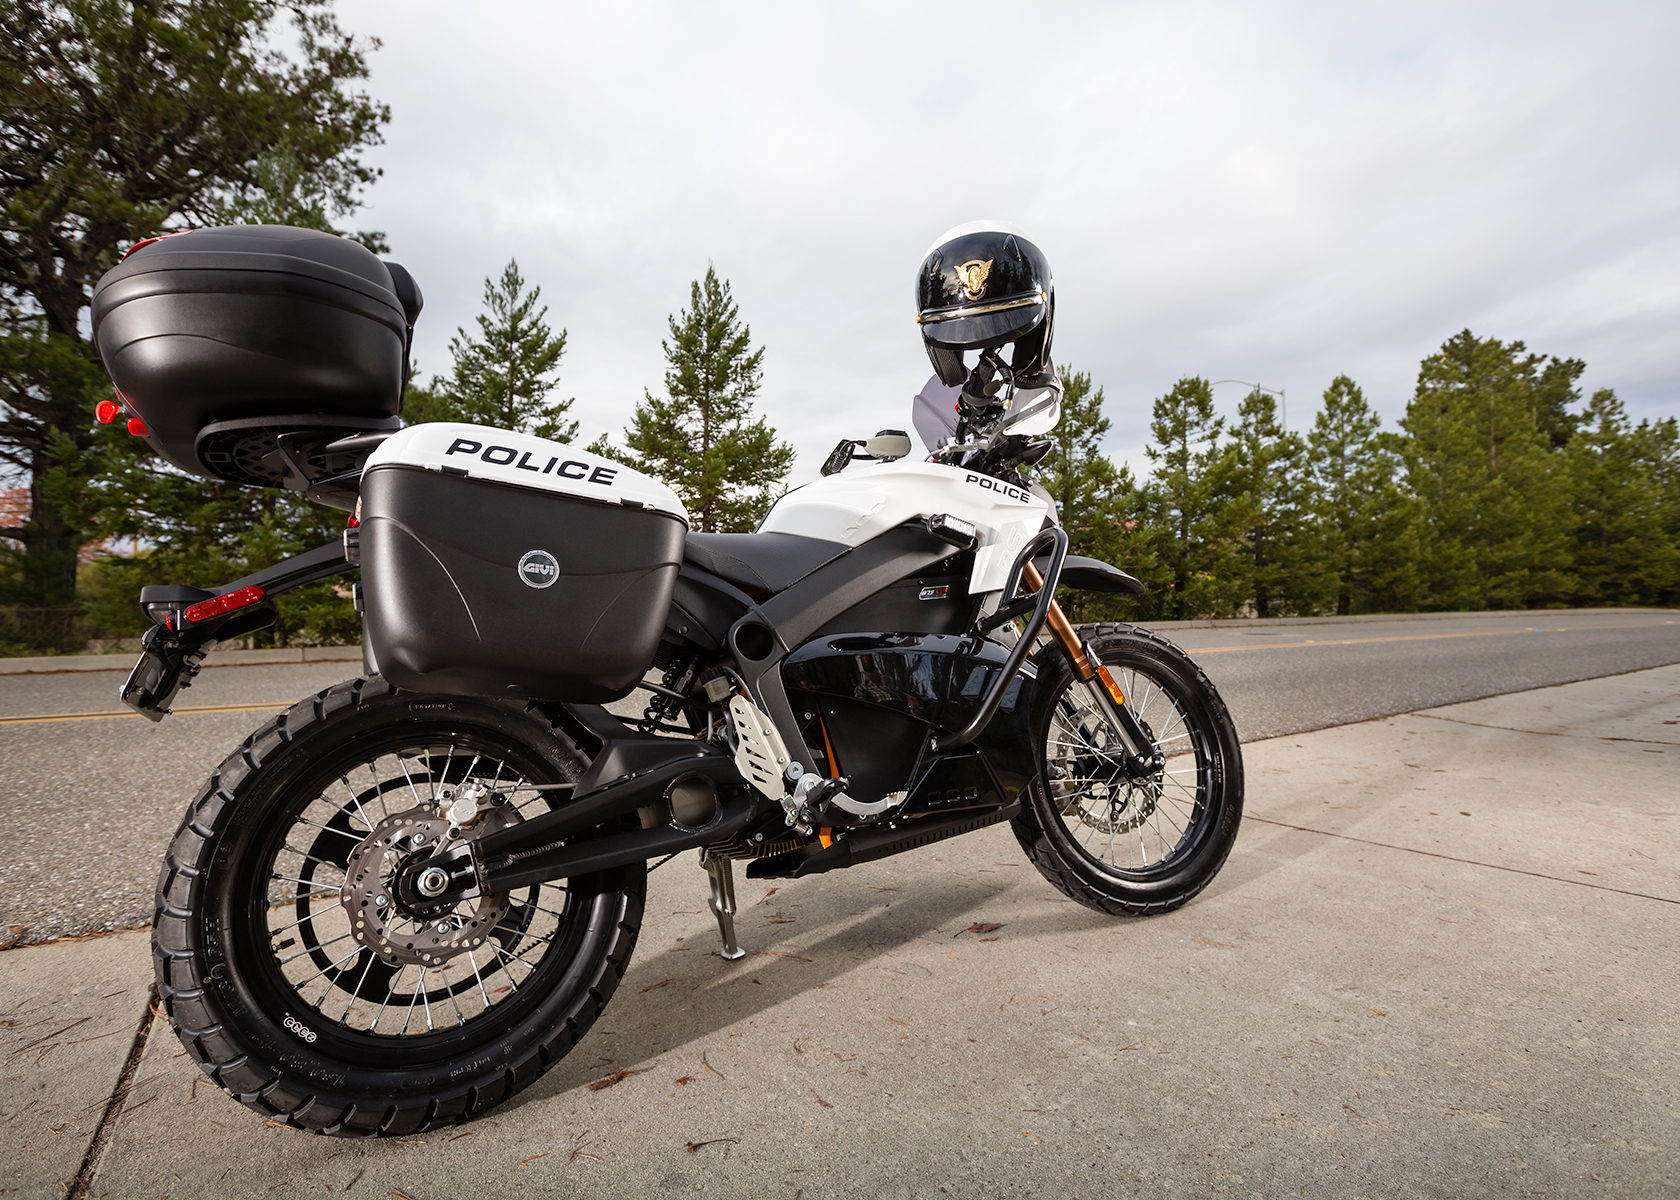 2013 Zero Police Electric Motorcycle: